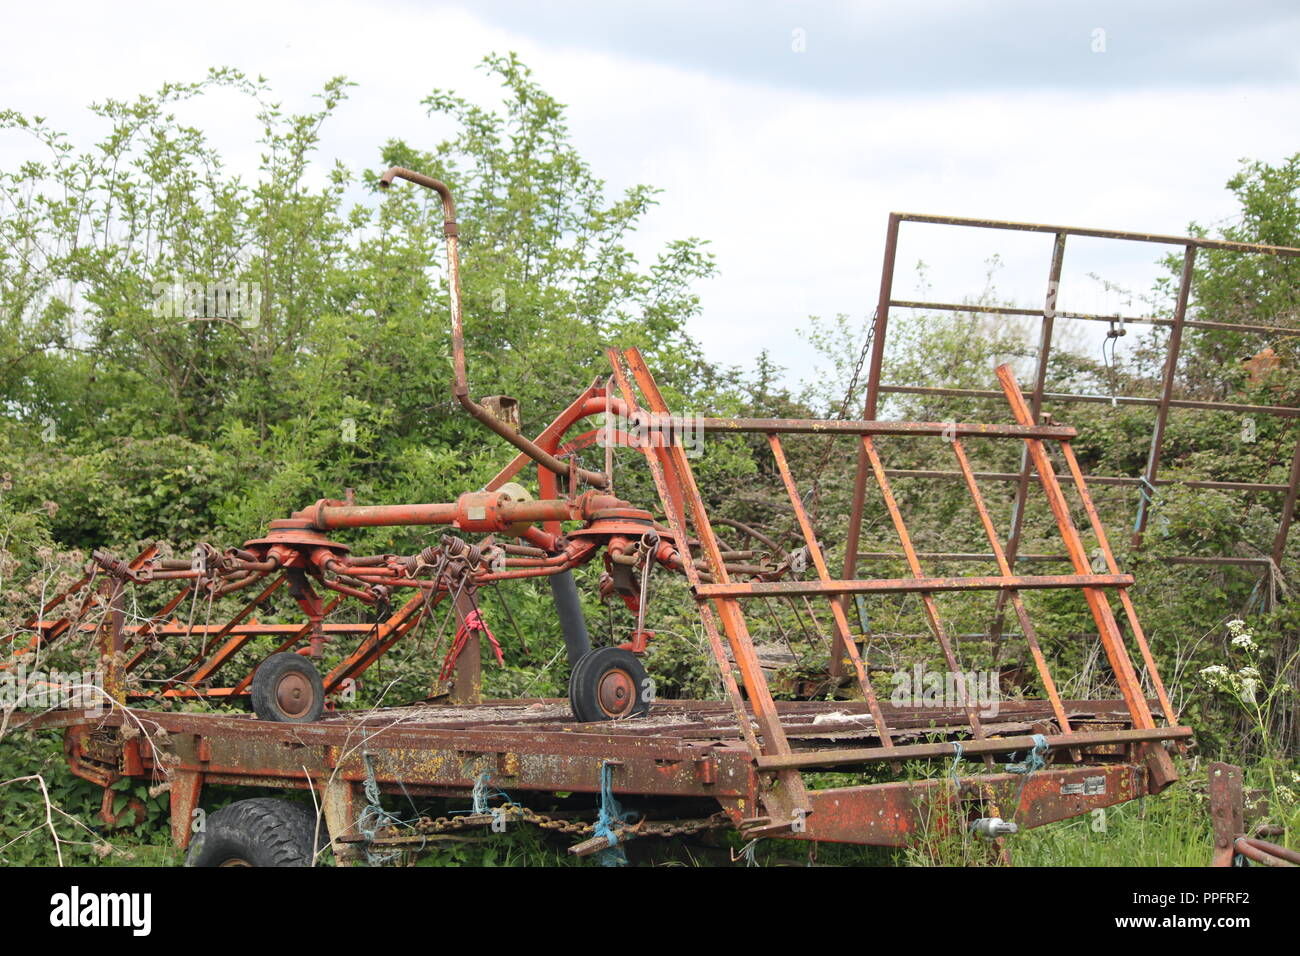 Abandoned farm machinery in France - Stock Image